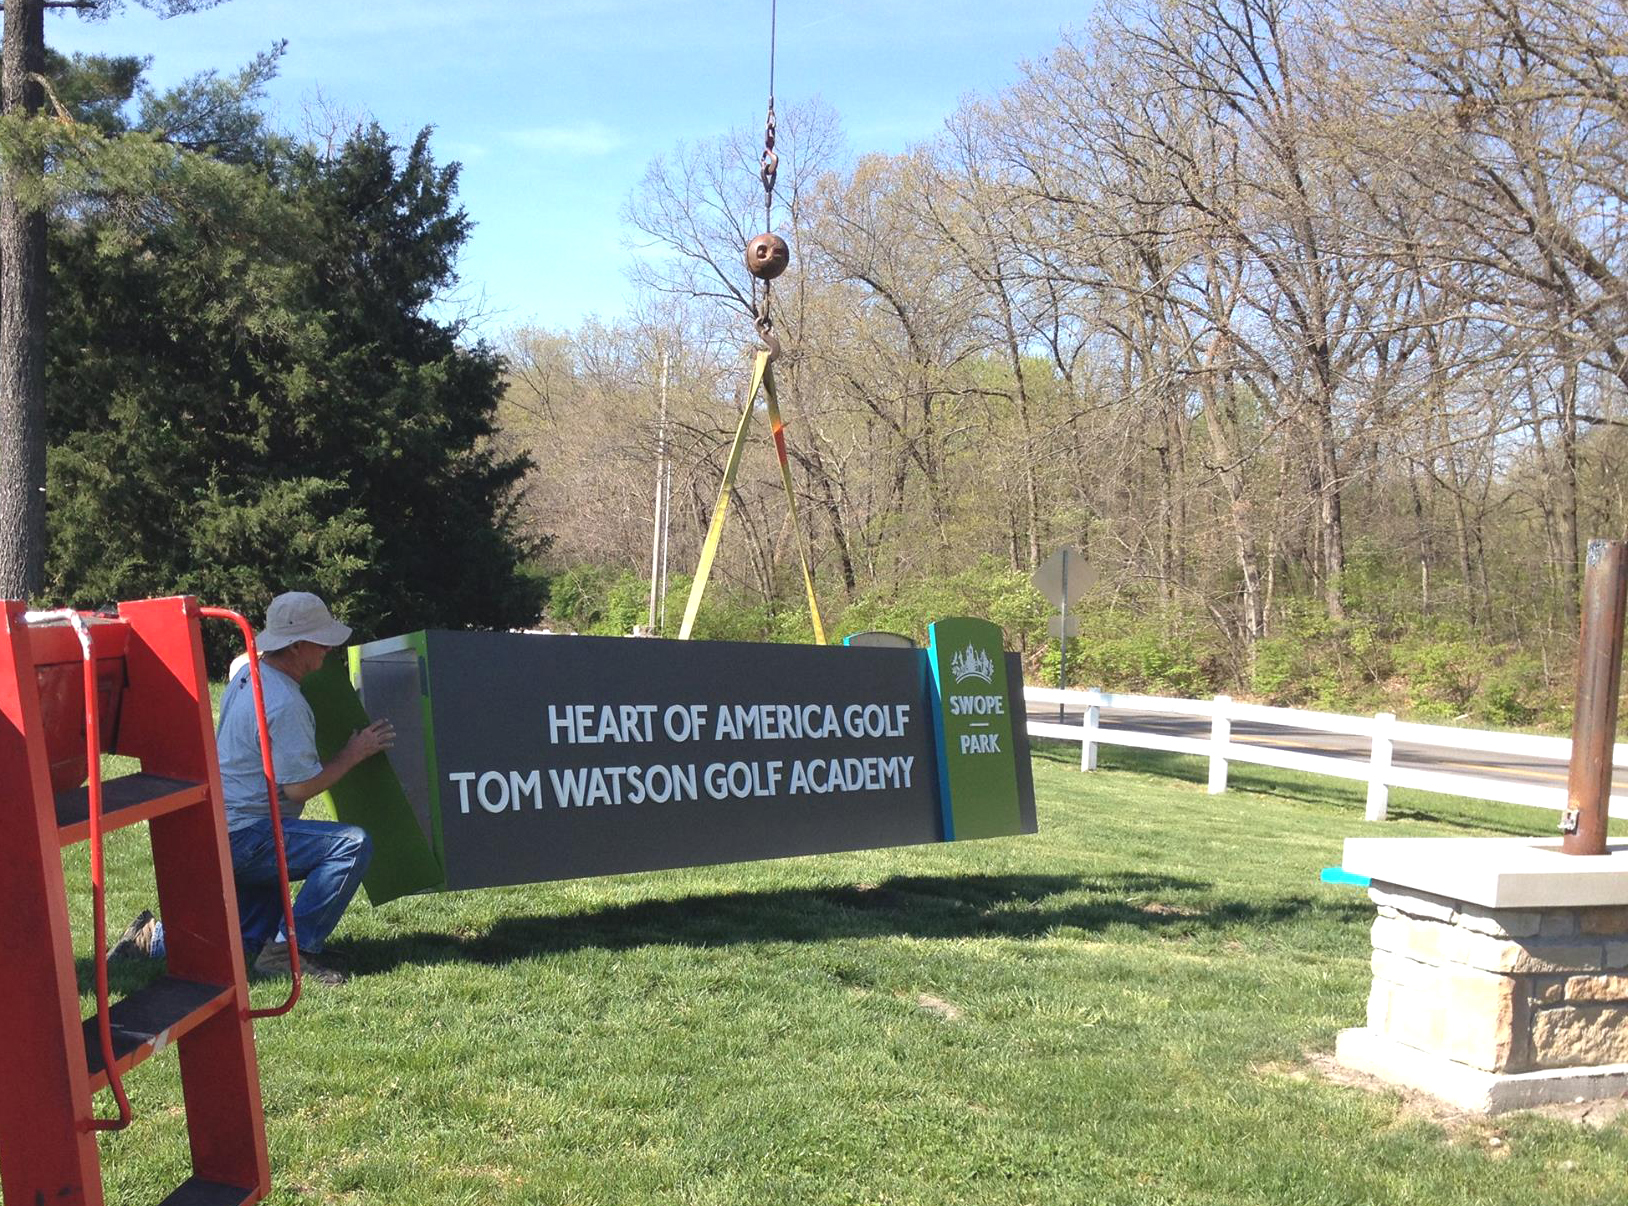 Tom Watson Golf Academy to Open with Ribbon Cutting Ceremony April 30 at Heart of America Golf Course